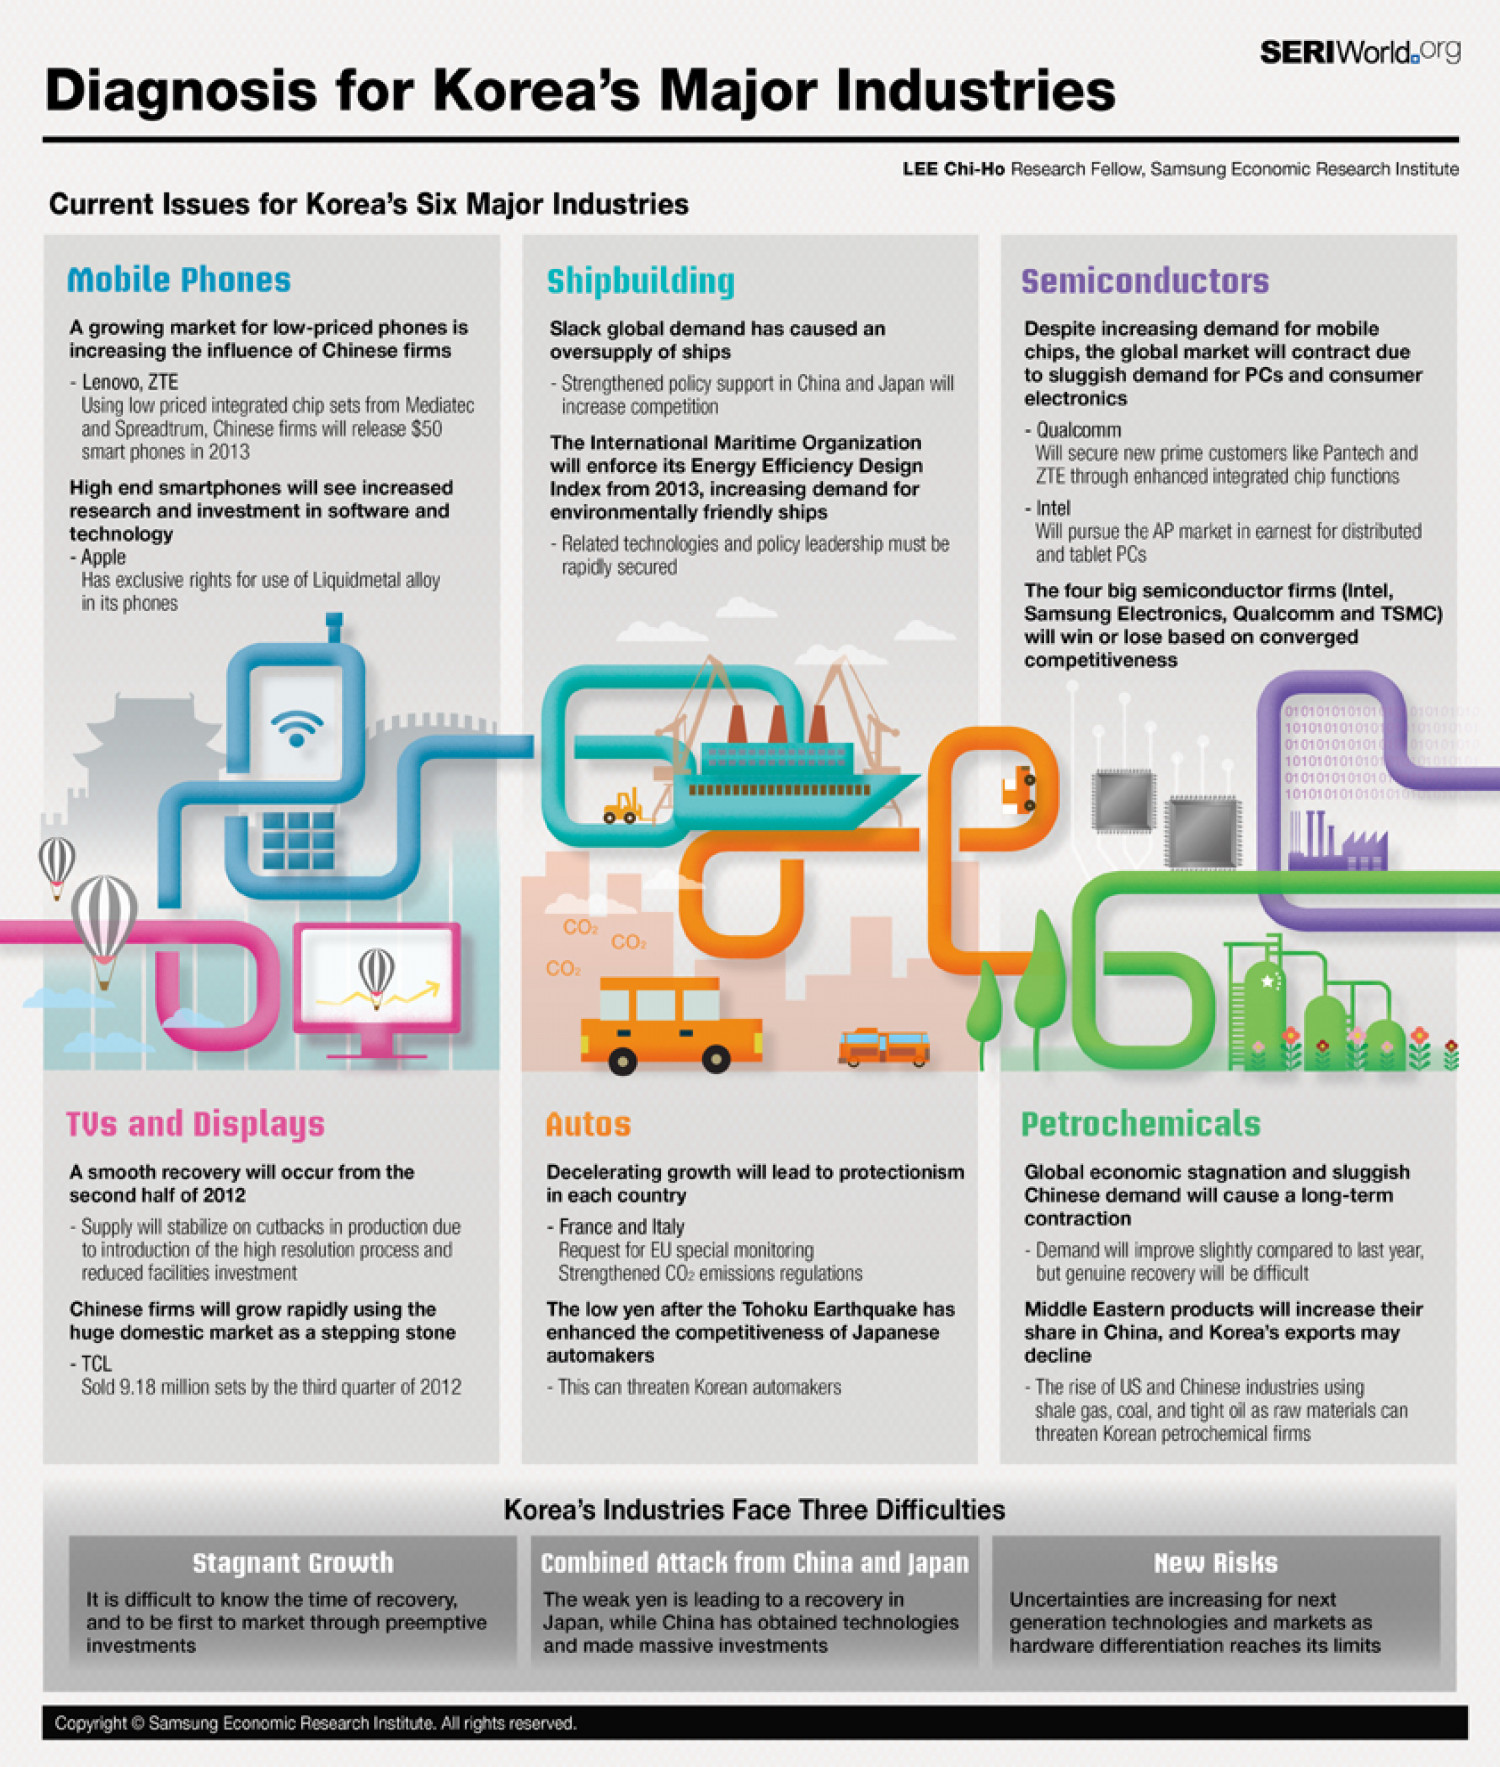 Diagnosis for Korea's Major Industries Infographic